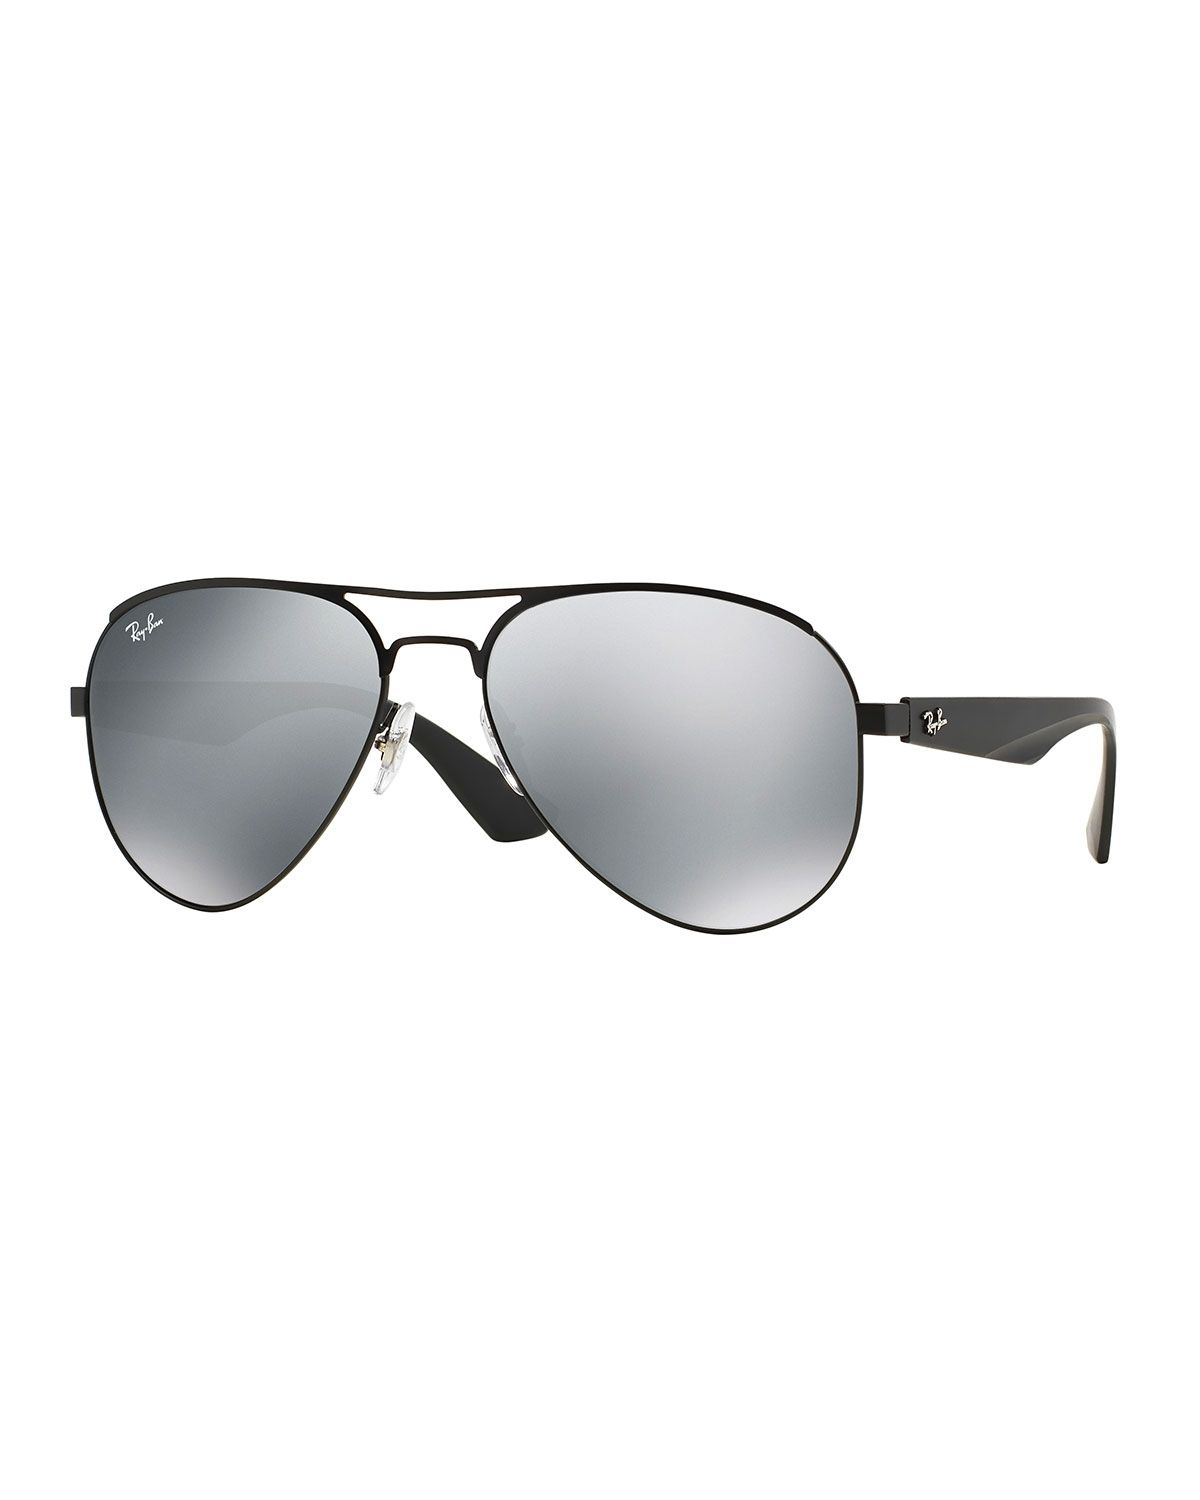 be400973fbf3e Rayban Aviator Sunglasses With Mirror Lens in Black for Men Lyst ...